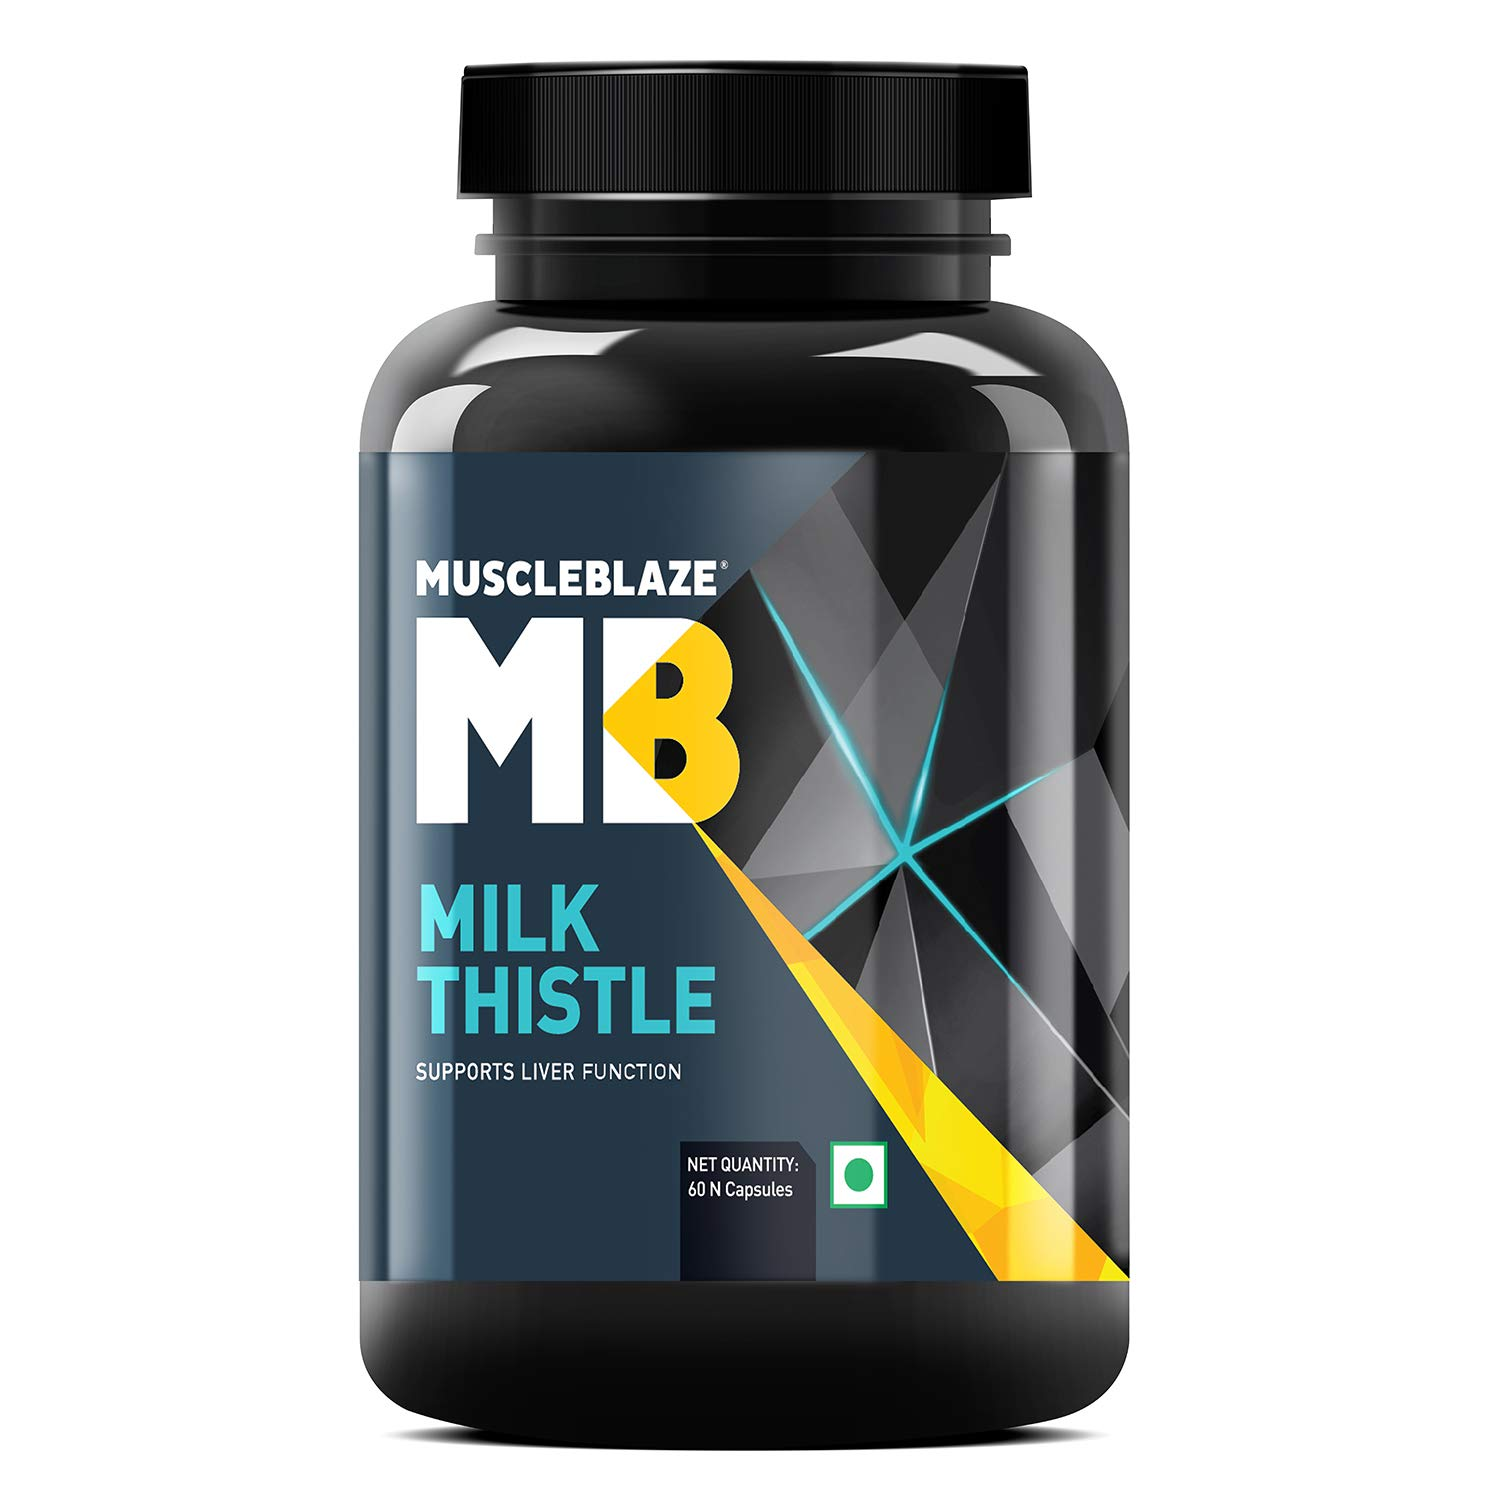 MuscleBlaze Milk Thistle With Silybum Marianum 600 mg for Liver detox 60 capsules